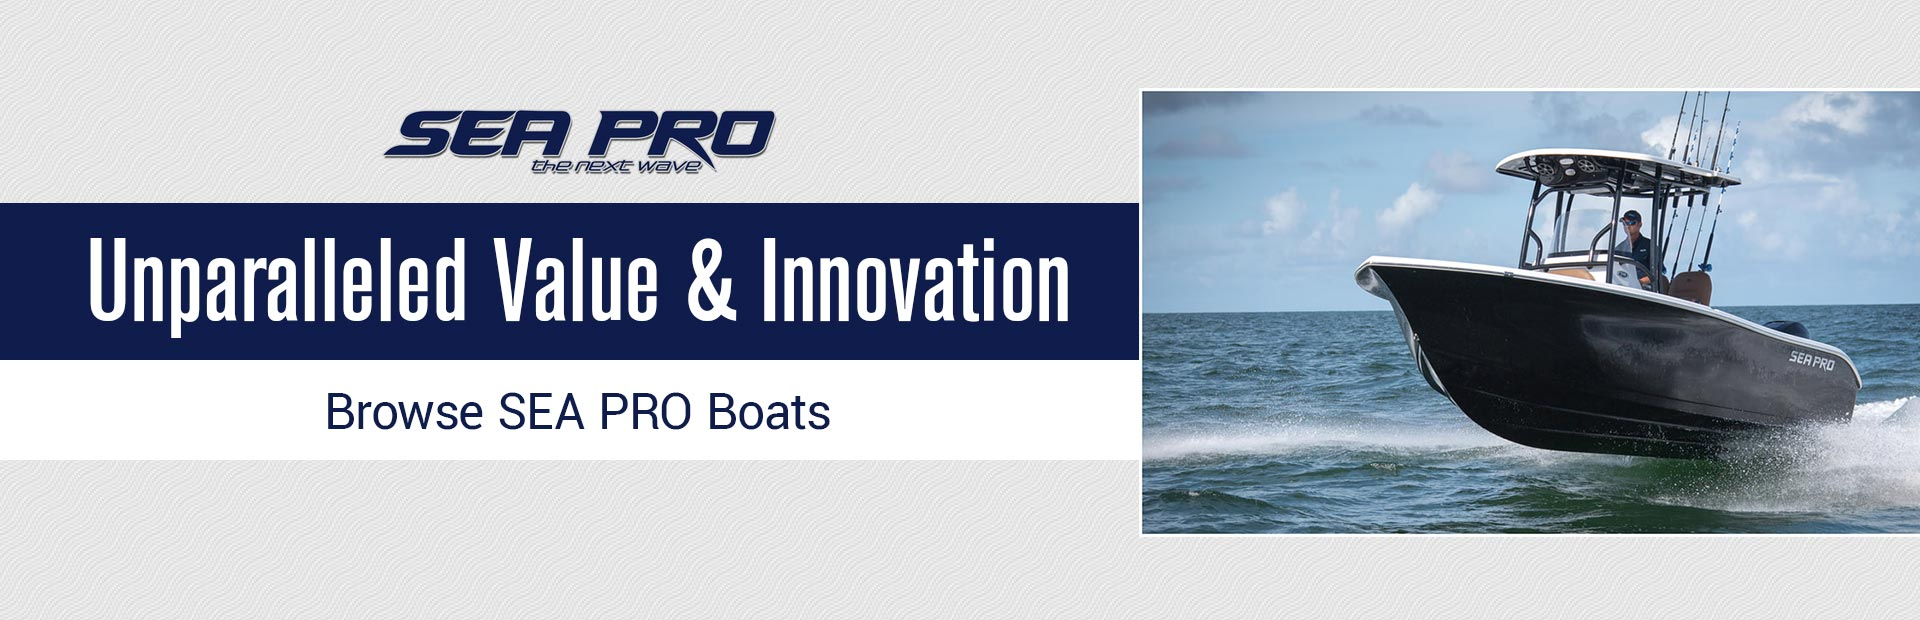 Click here to browse SEA PRO boats.